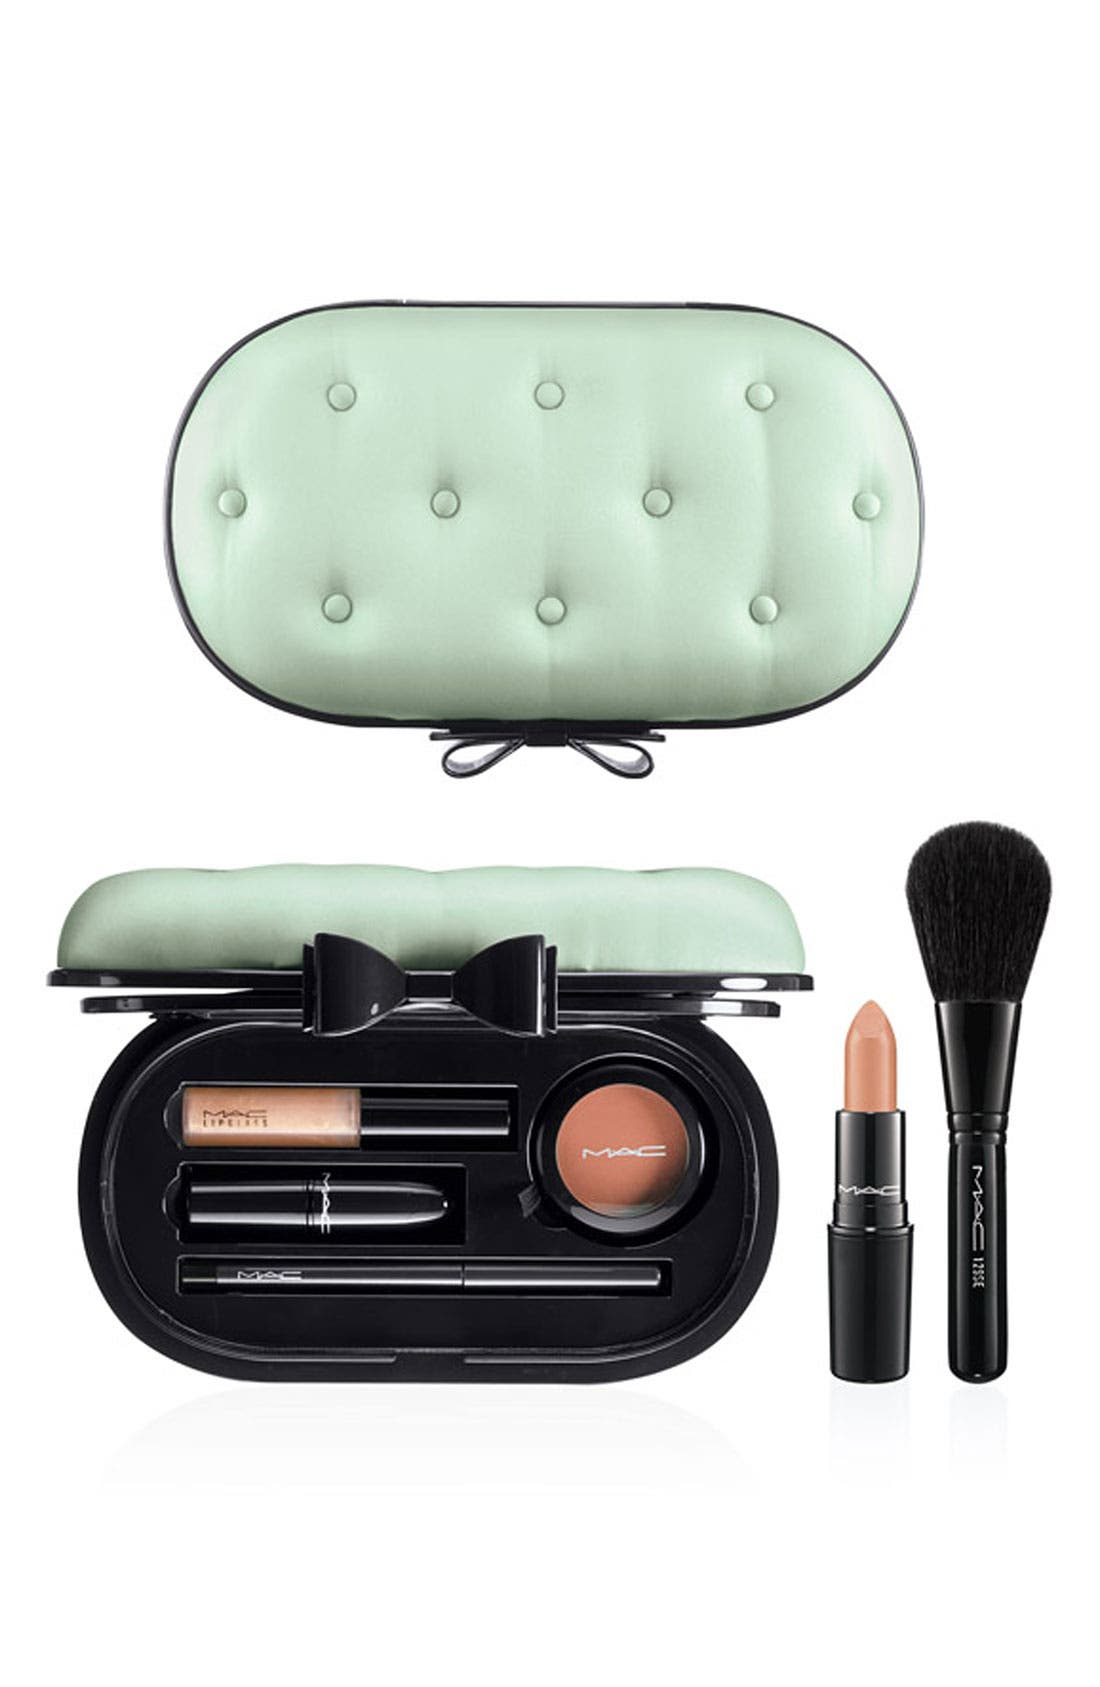 M·A·C 'Sinfully Chic' Face Kit,                             Main thumbnail 1, color,                             960